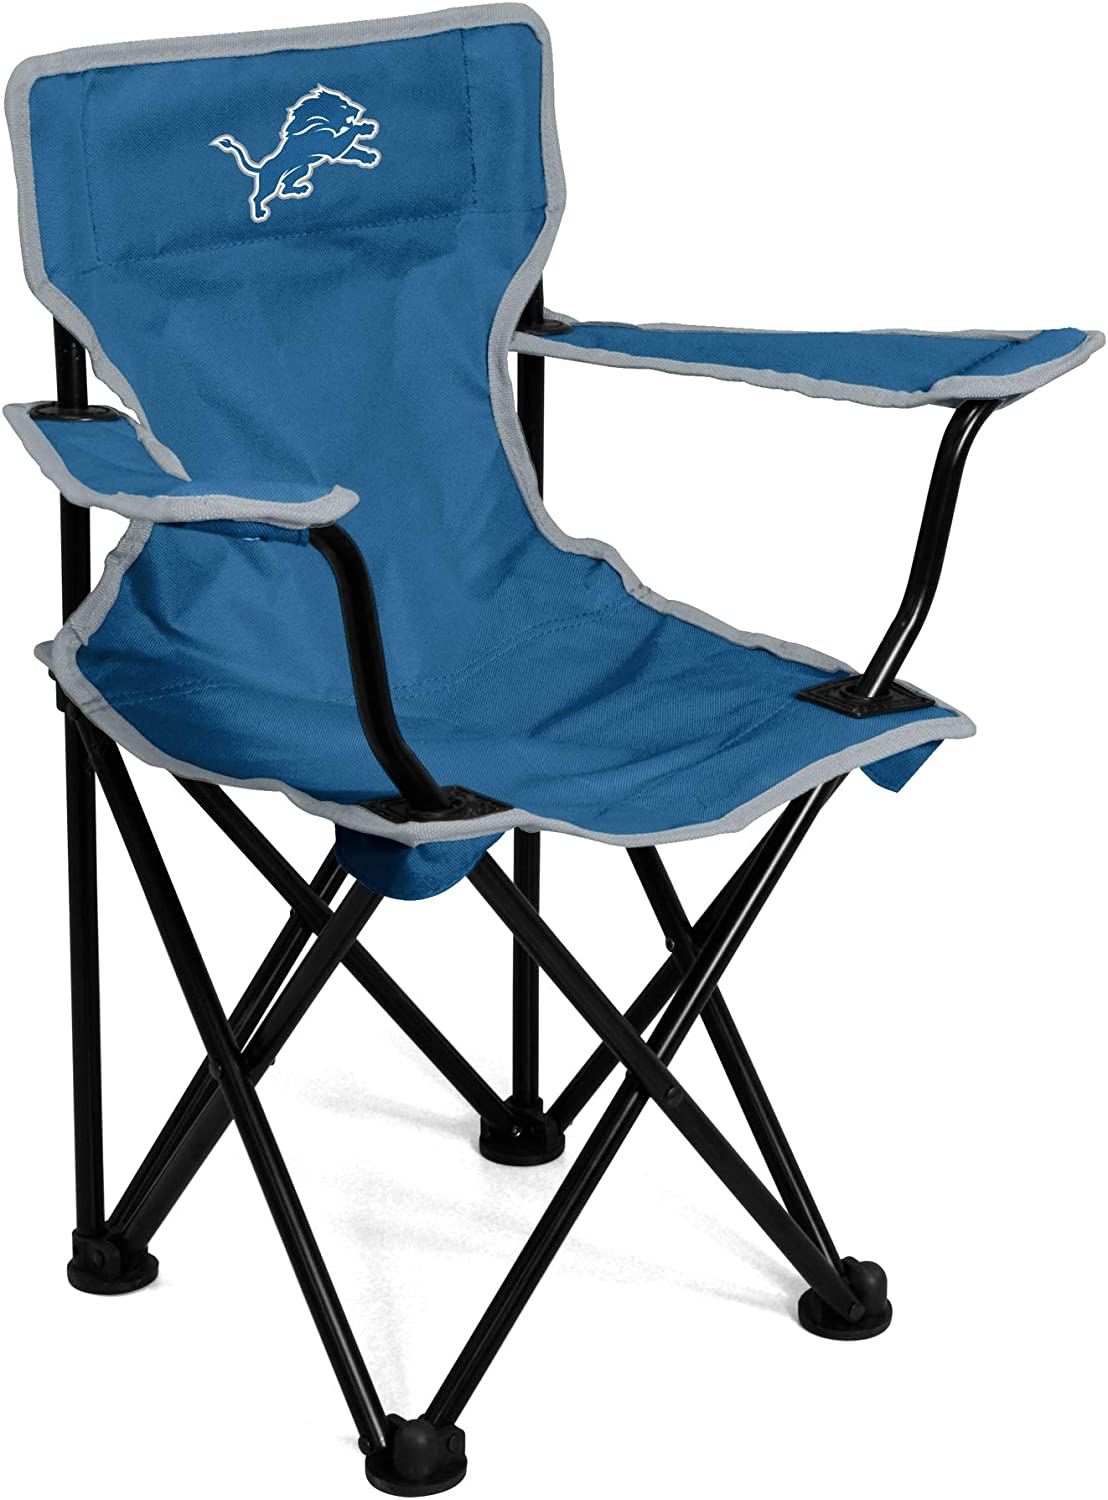 logobrands NFL Detroit Lions Unisex Toddler Chairtoddler Chair, Cobalt, N/A, One Size